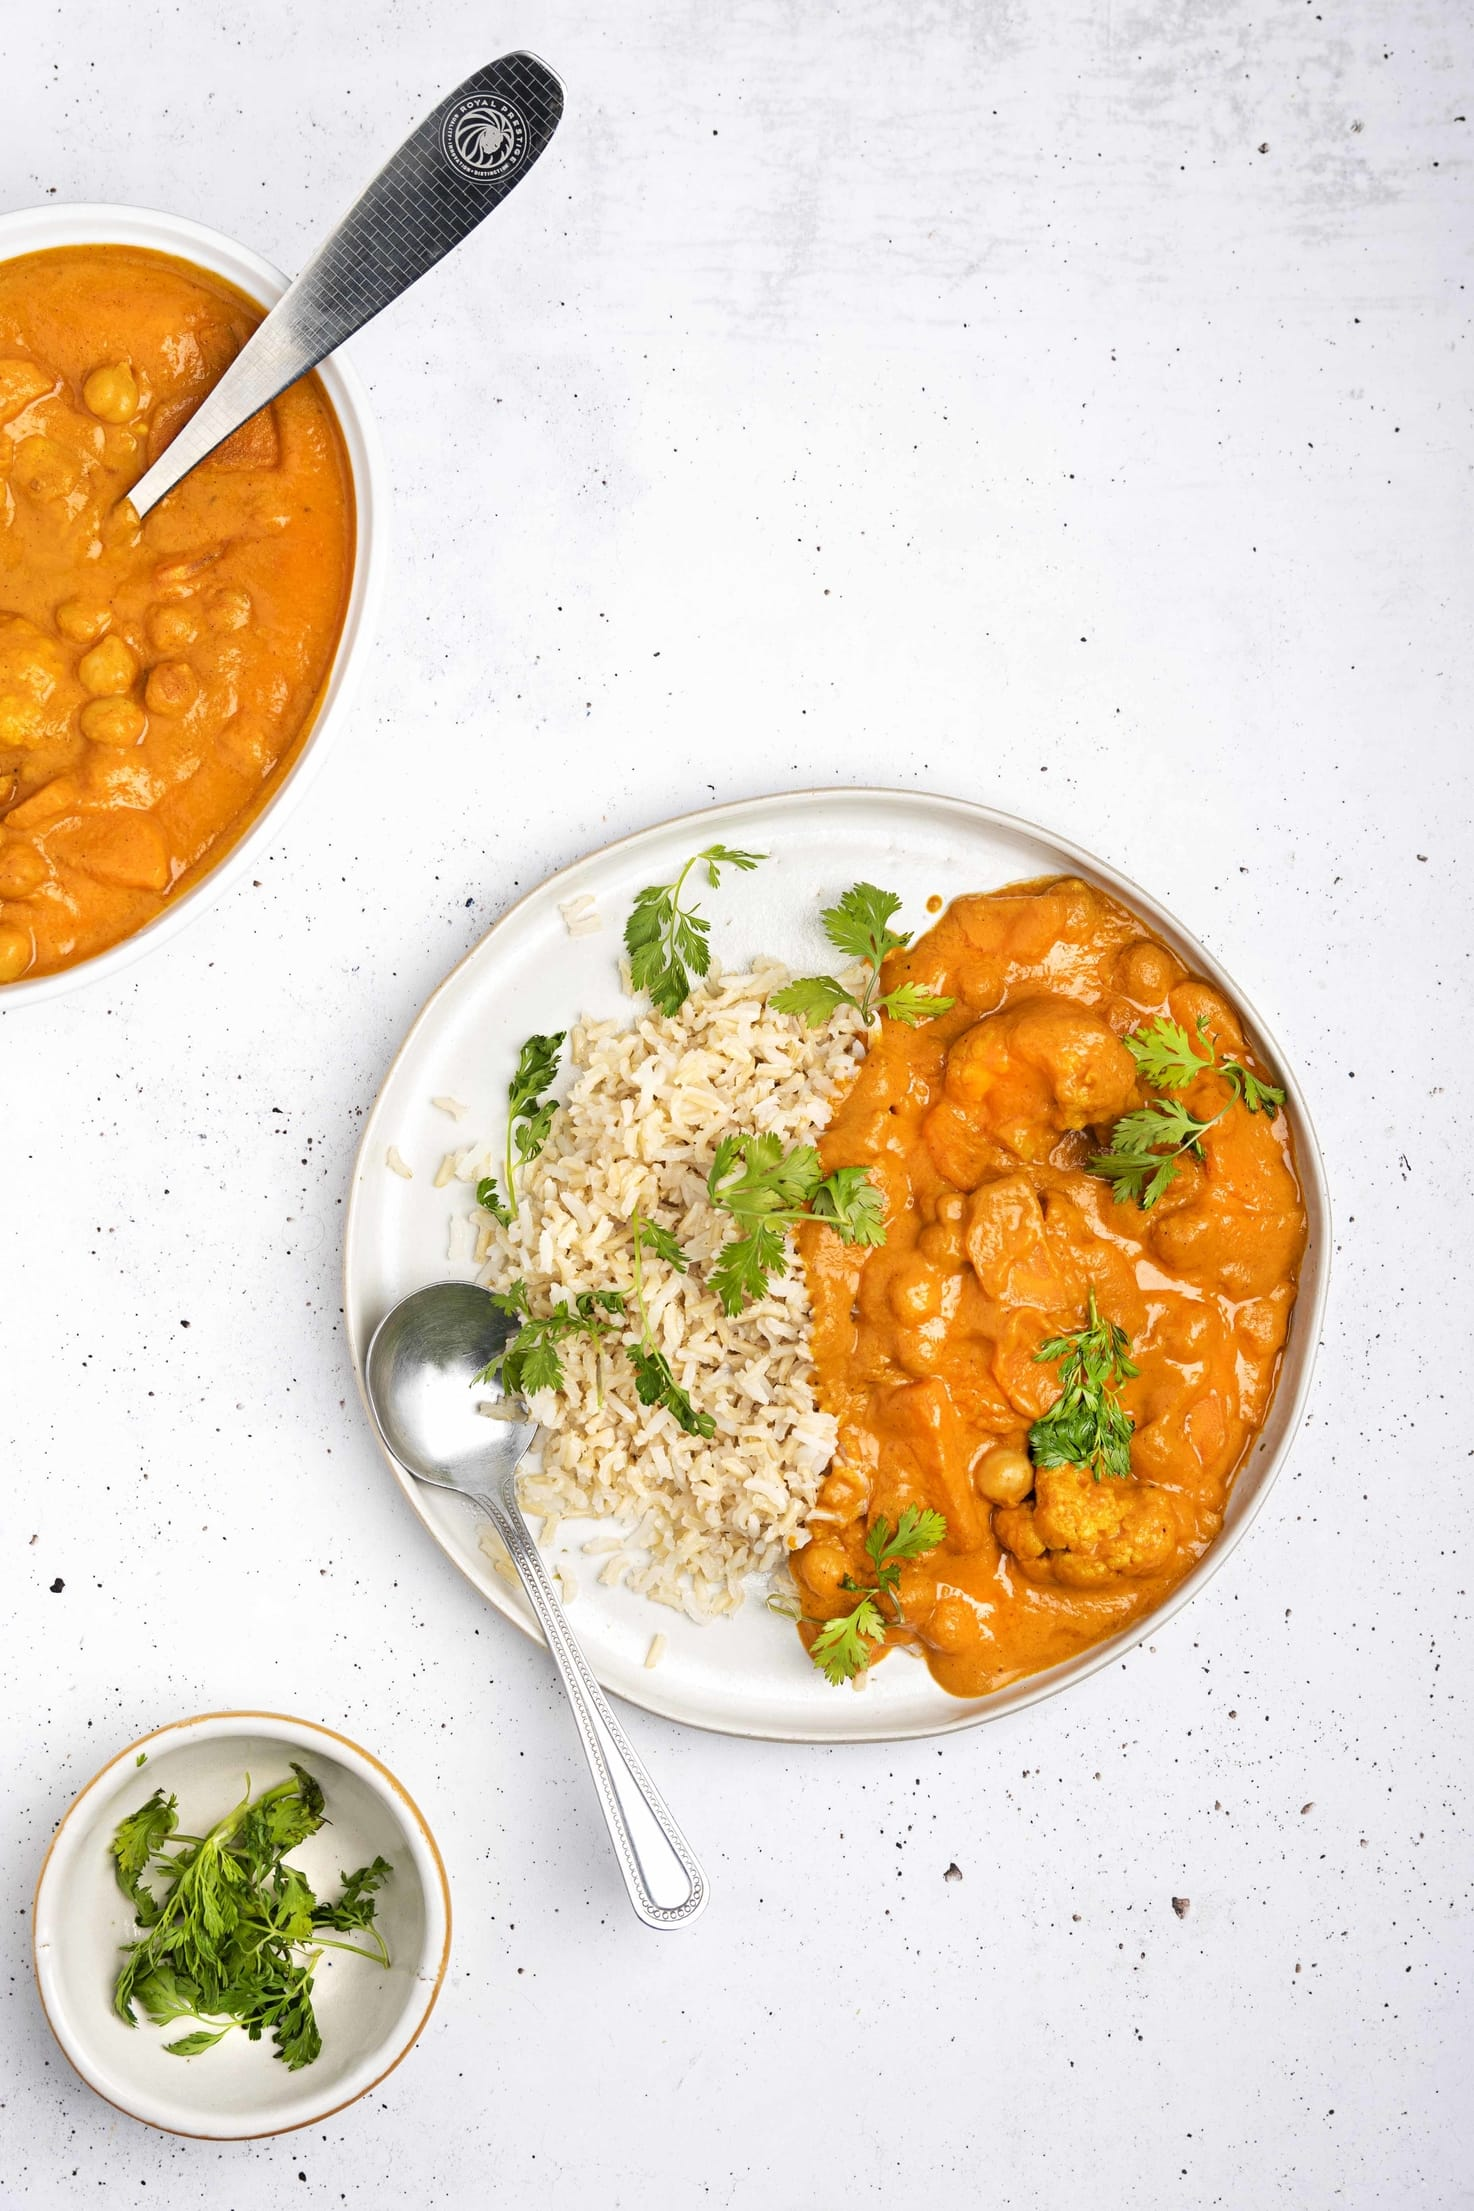 A plate of vegan tikka masala with a spoon, served with brown rice and garnished with parsley. There is a small bowl of chopped parsley in the bottom left hand corner and another bowl of tikka masala in the top left hand corner, with a serving spoon submerged in it   Hurry The Food Up